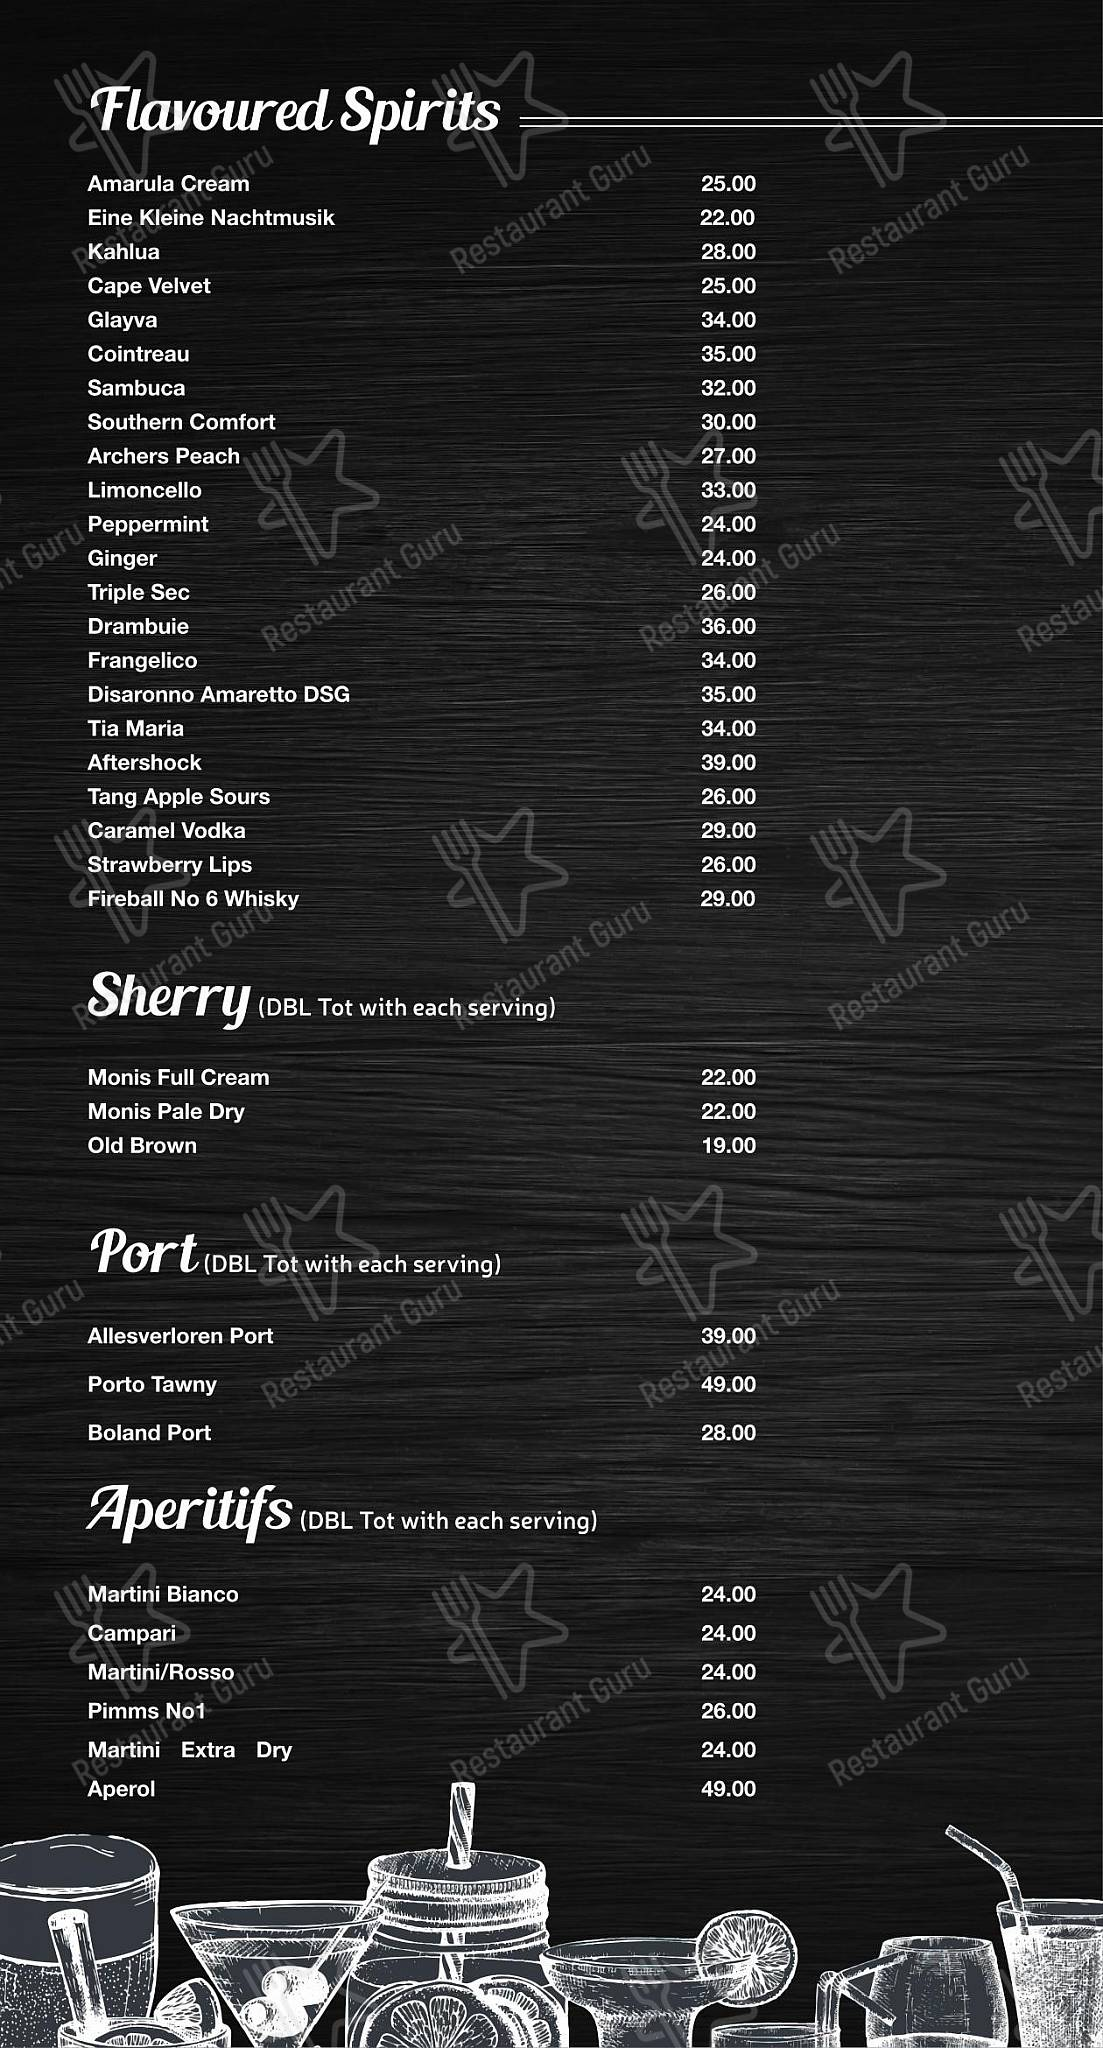 Mike's Kitchen menu - dishes and beverages